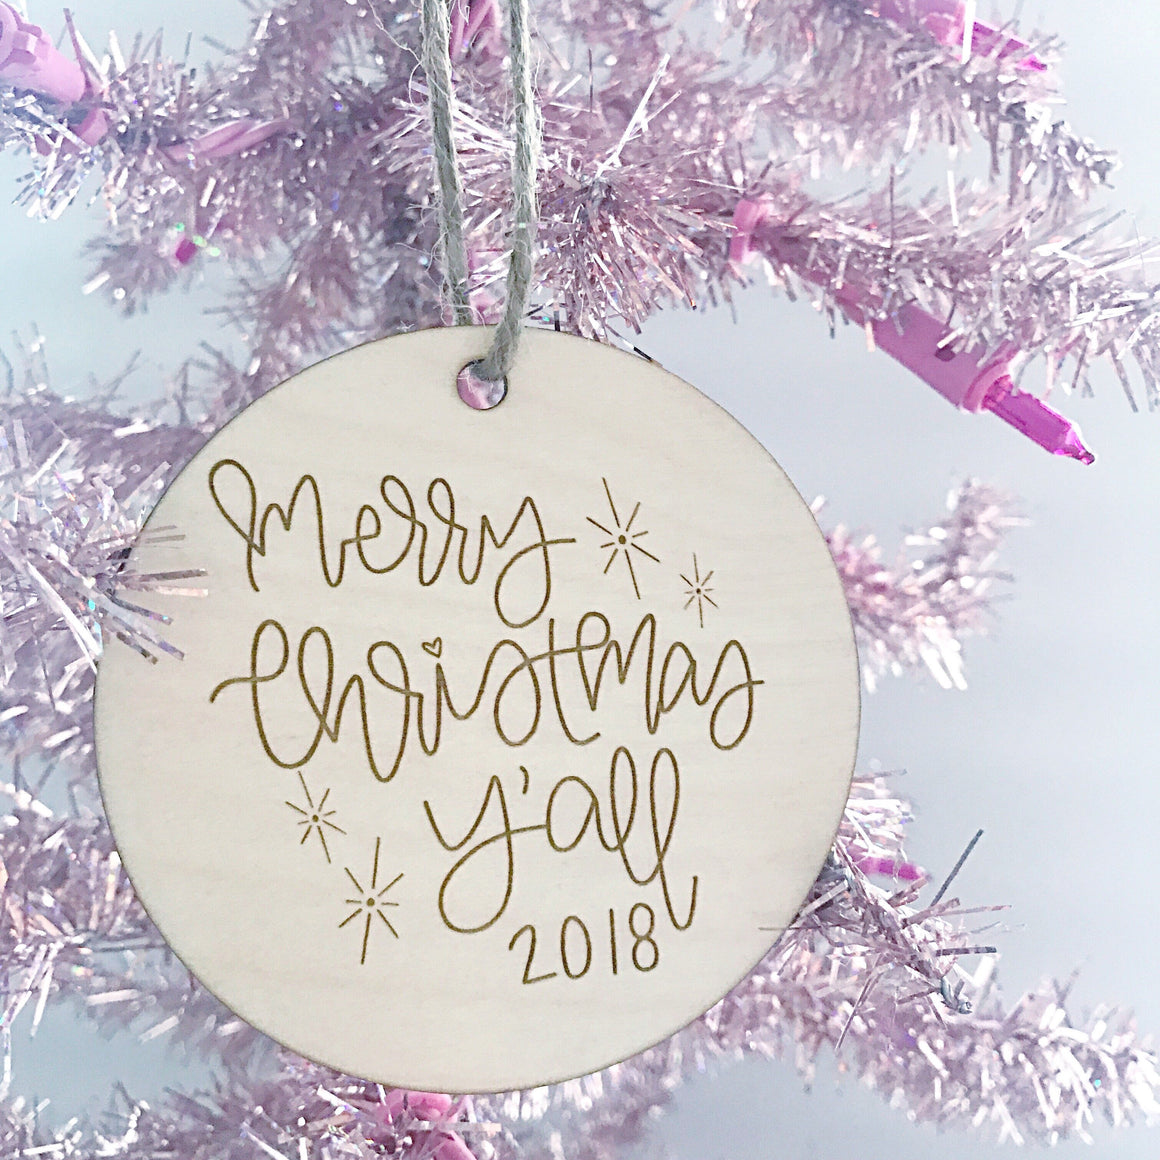 Celebrate Christmas with a Merry Christmas Y'all 2018 ornament handlettered by Full Heart Co.